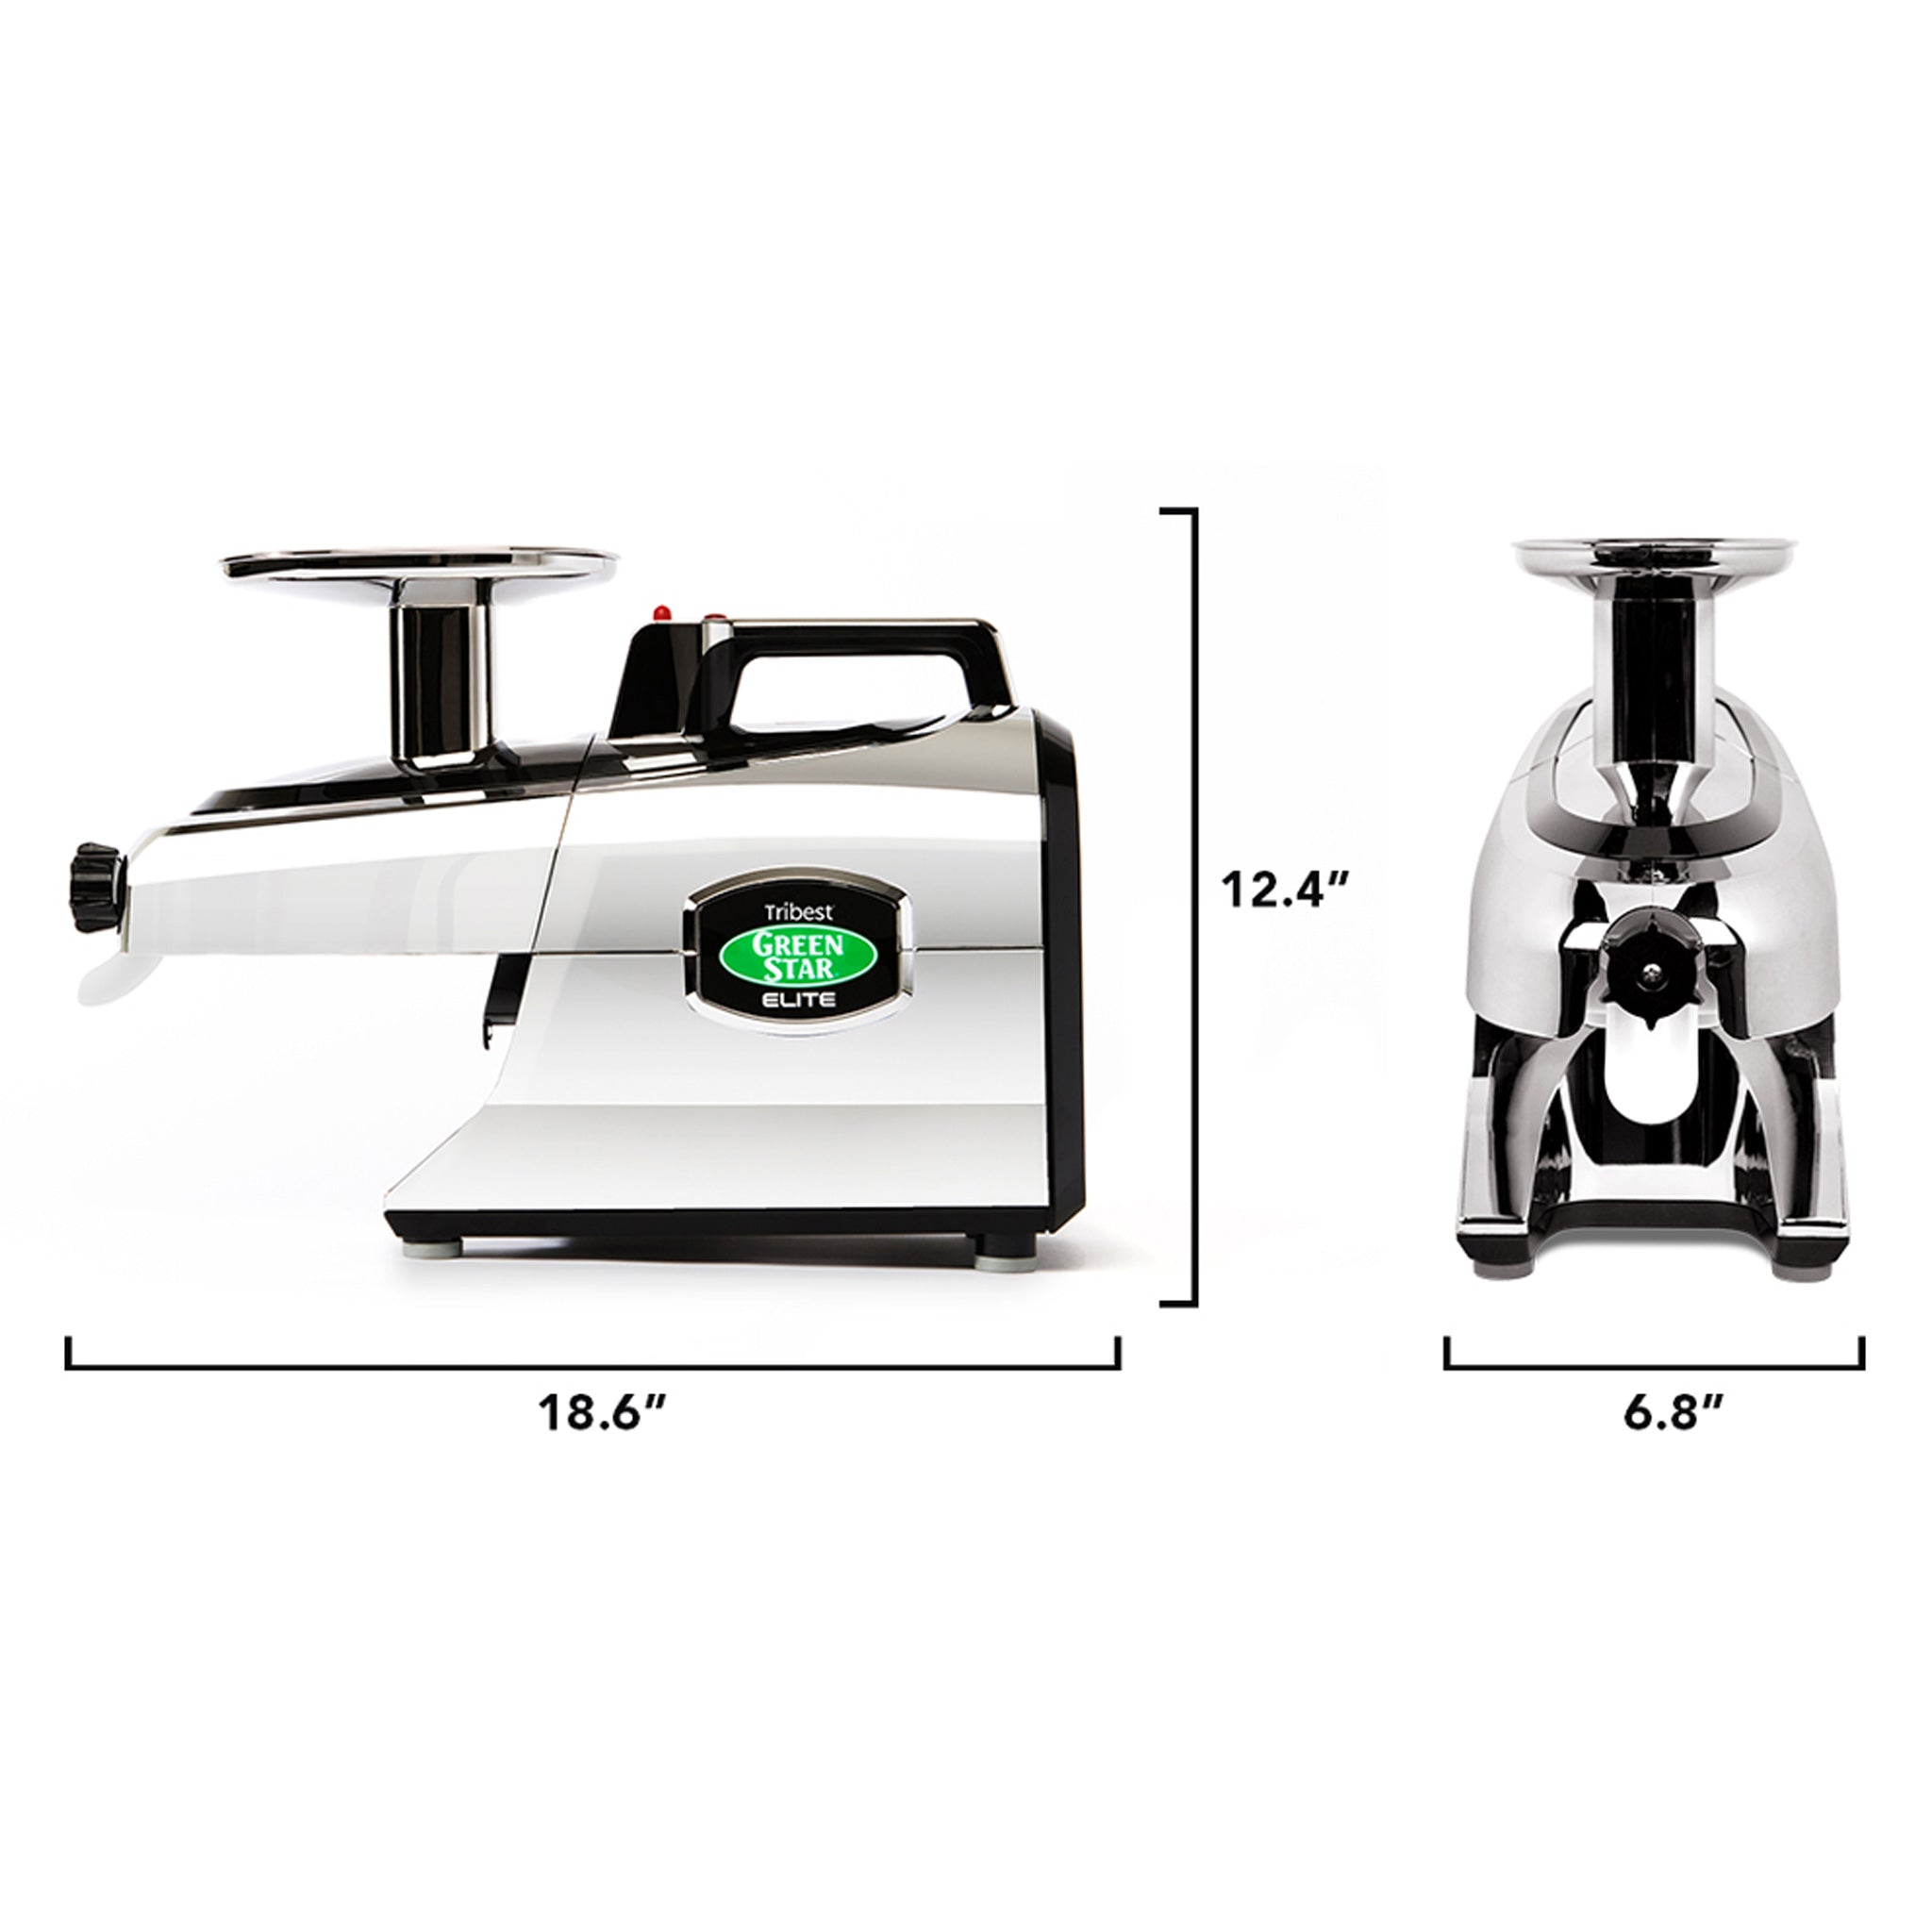 Greenstar® Elite Jumbo Twin Gear Slow Masticating Juicer in Chrome GSE-5050-B - Size 18.6